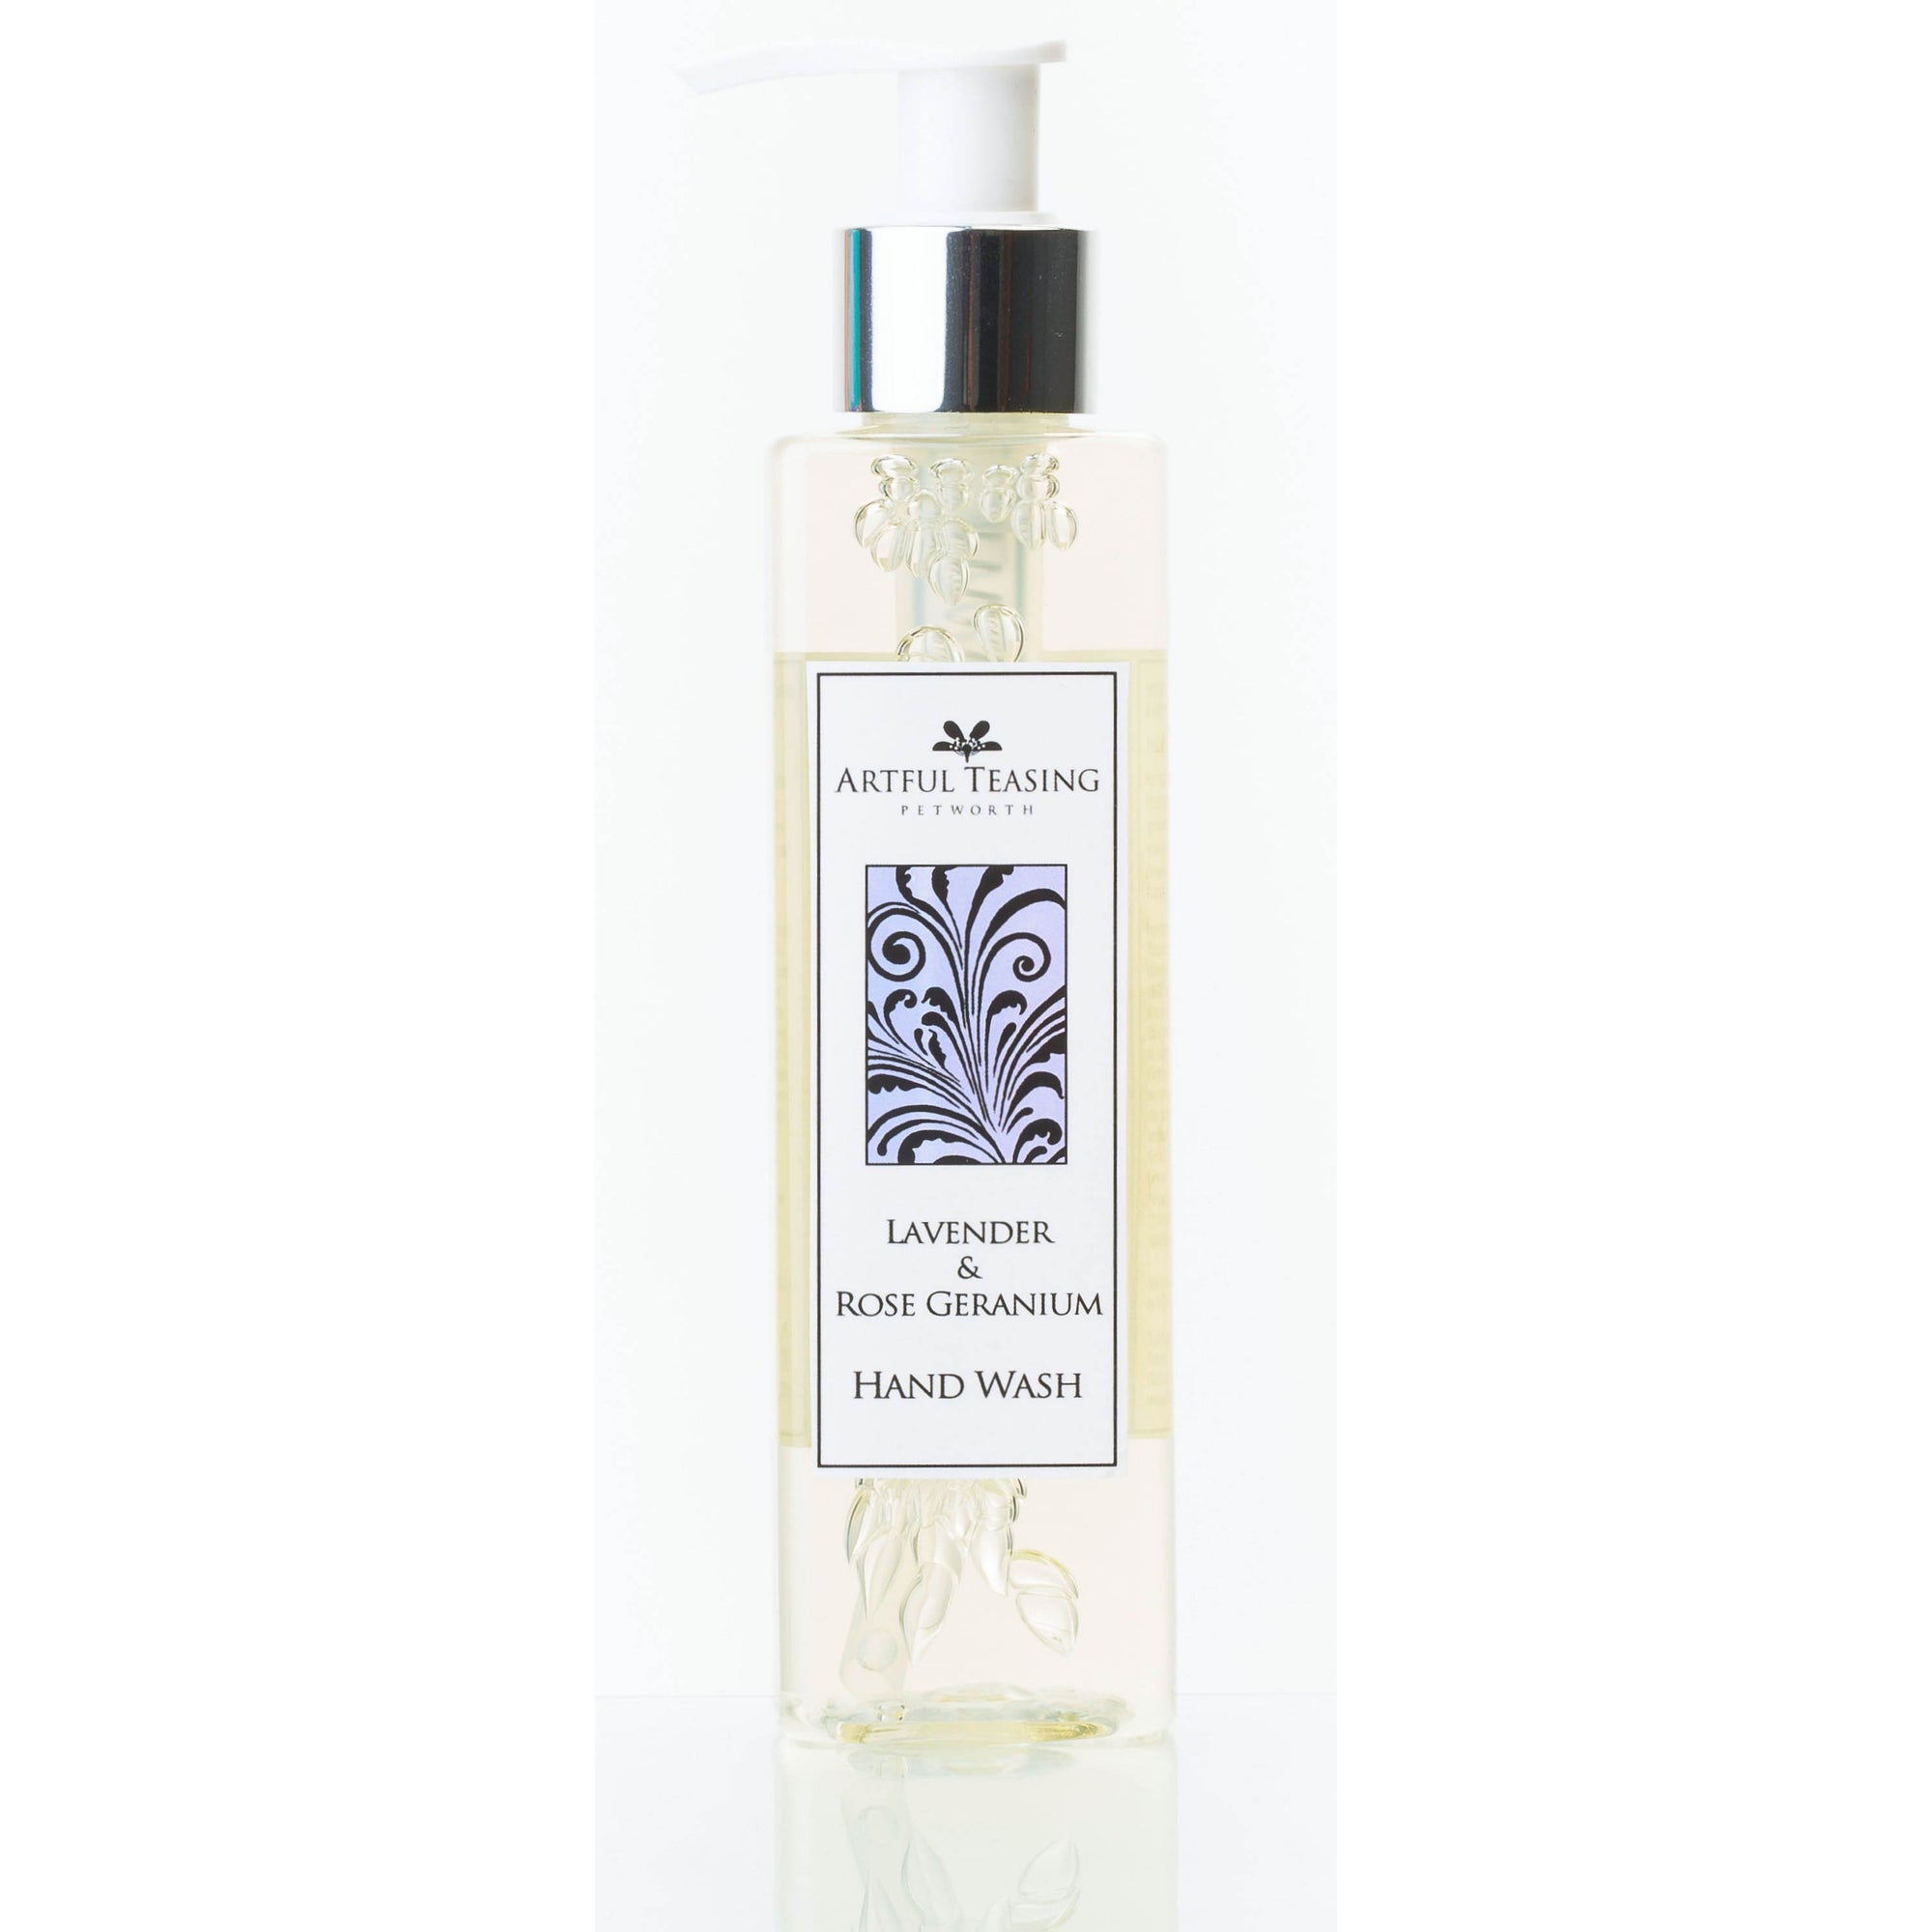 Lavender & Rose Geranium Hand Wash 200ml